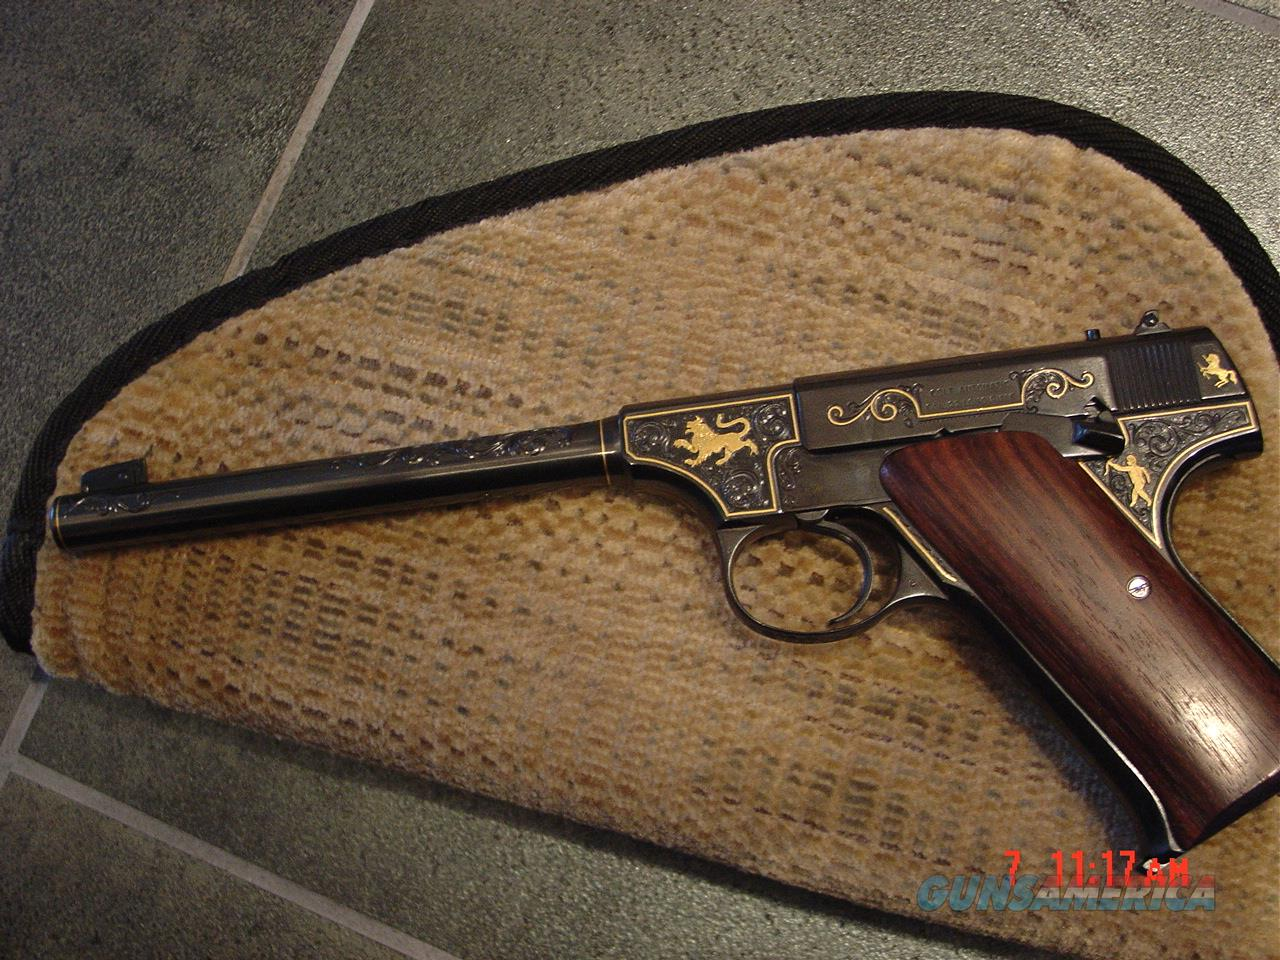 "Colt Pre-Woodsman,circa 1919,fully refinished in high gloss blue with gold accents,master engraved by  Clint Finley,22lr,6 1/2"",an awesome work of art !!  Guns > Pistols > Colt Automatic Pistols (22 Cal.)"